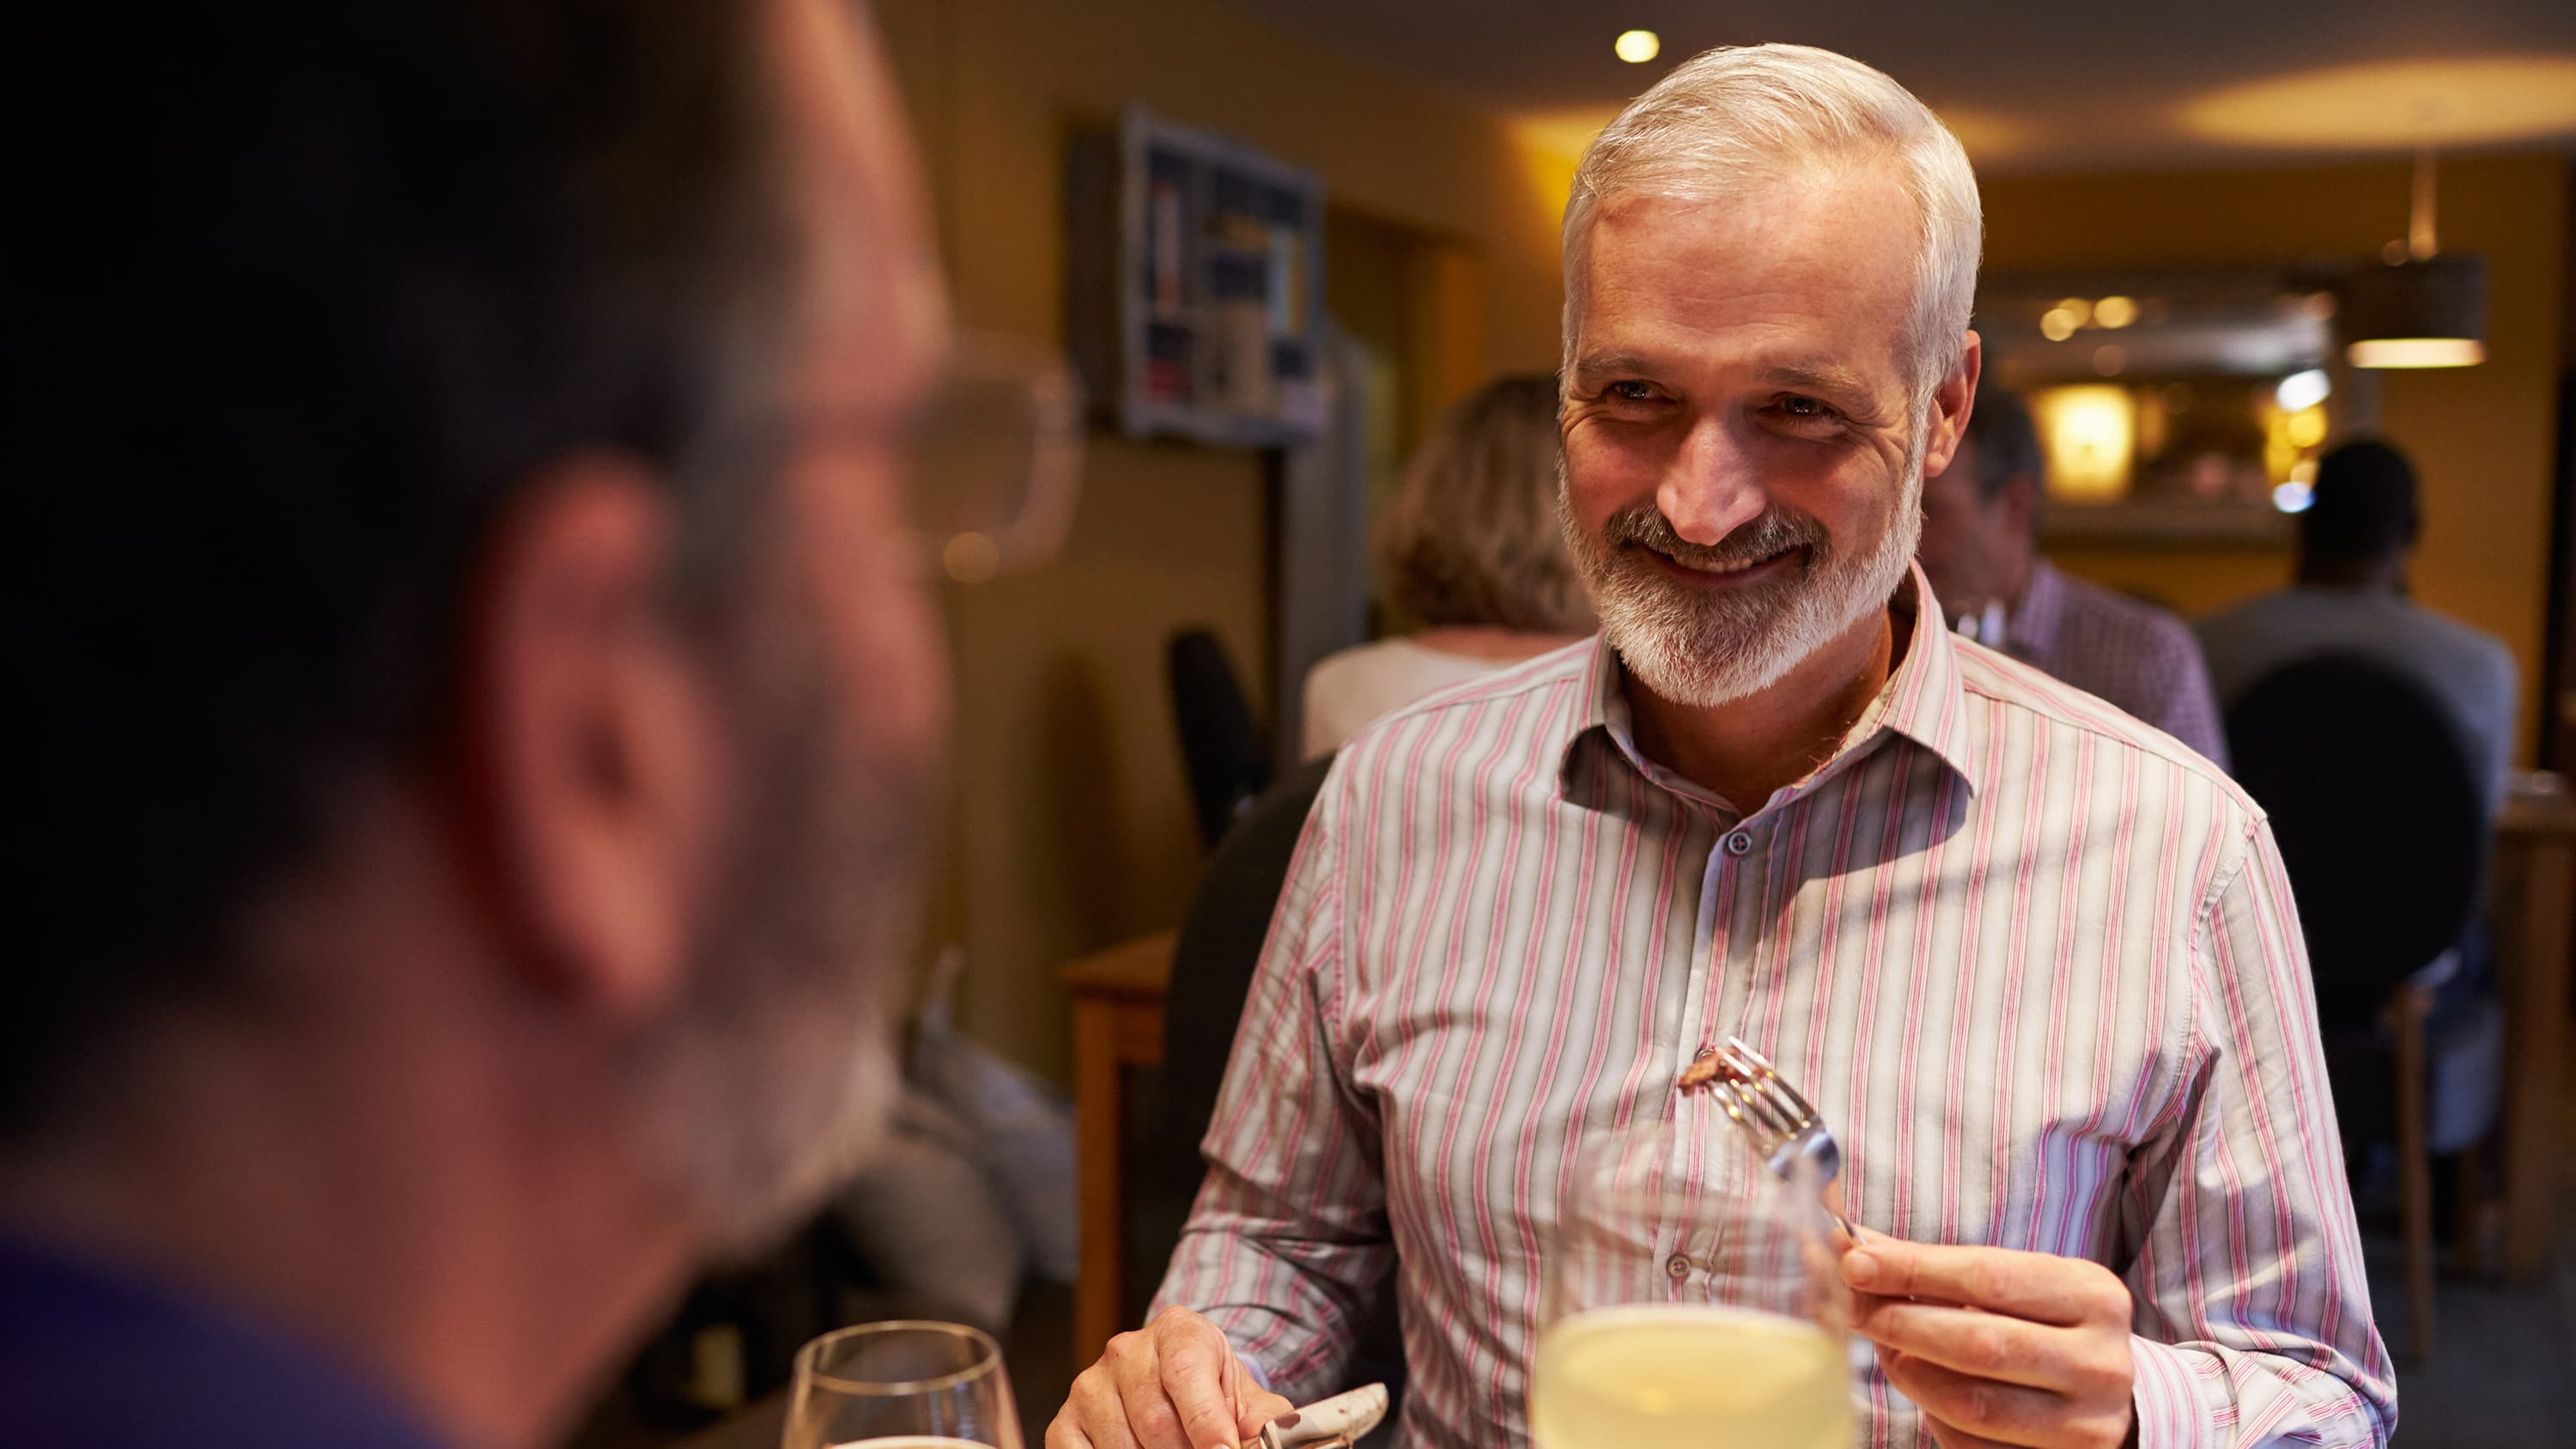 Man eating dinner, possibly discussing gastrointentinal cancers